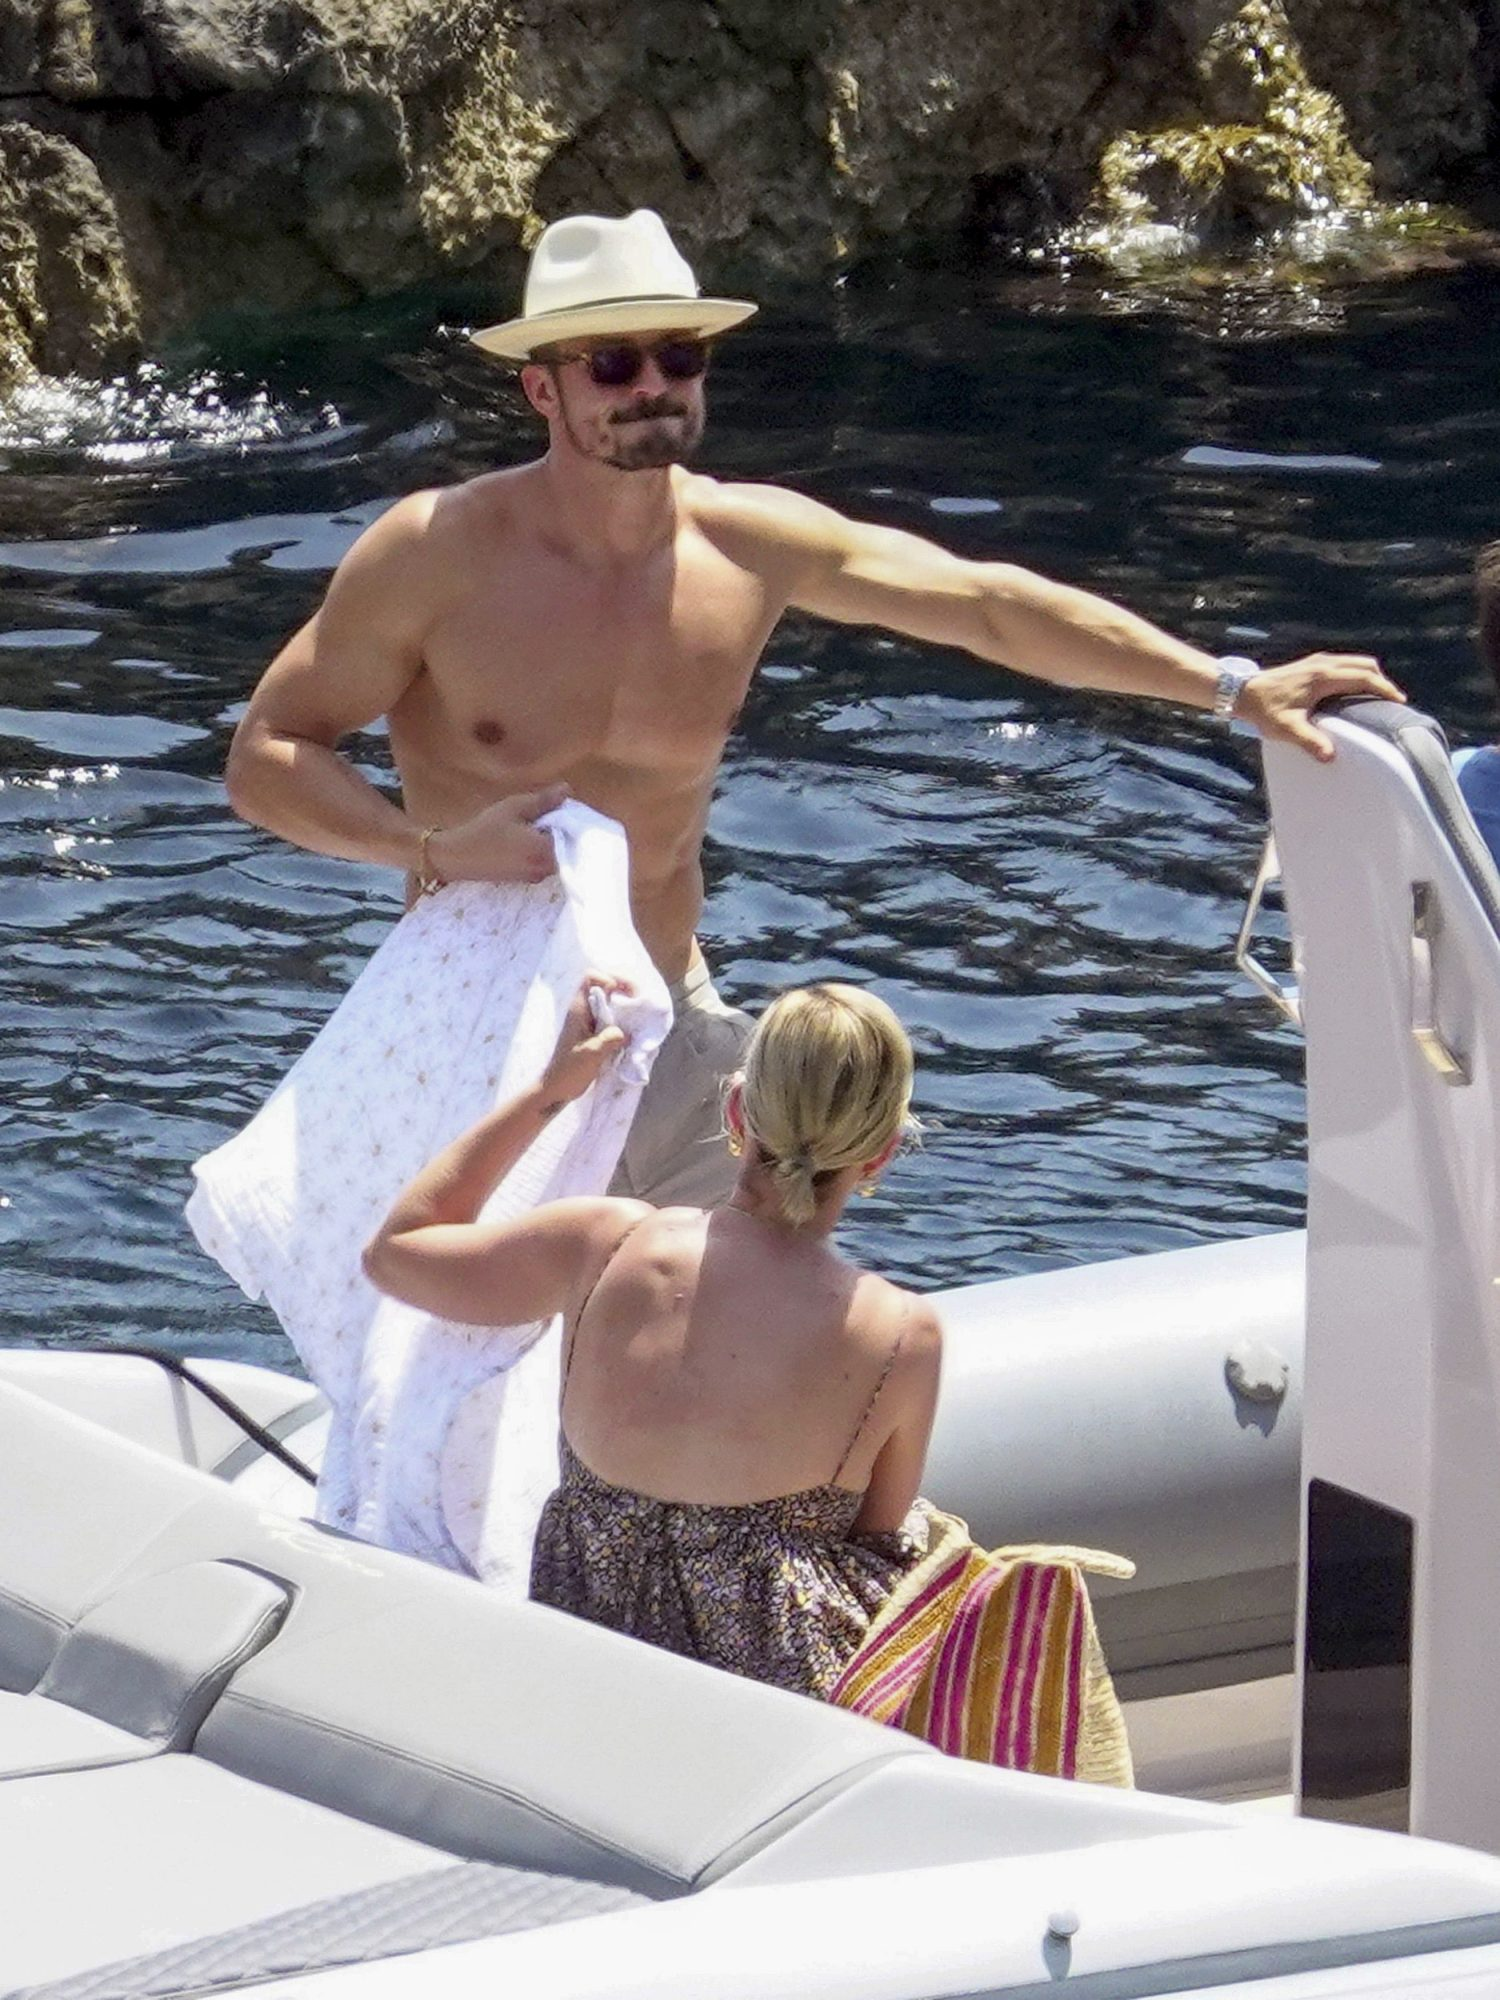 Dad bod to be proud of! Orlando Bloom Enjoys the Sun with Katy Perry and Baby Daisy